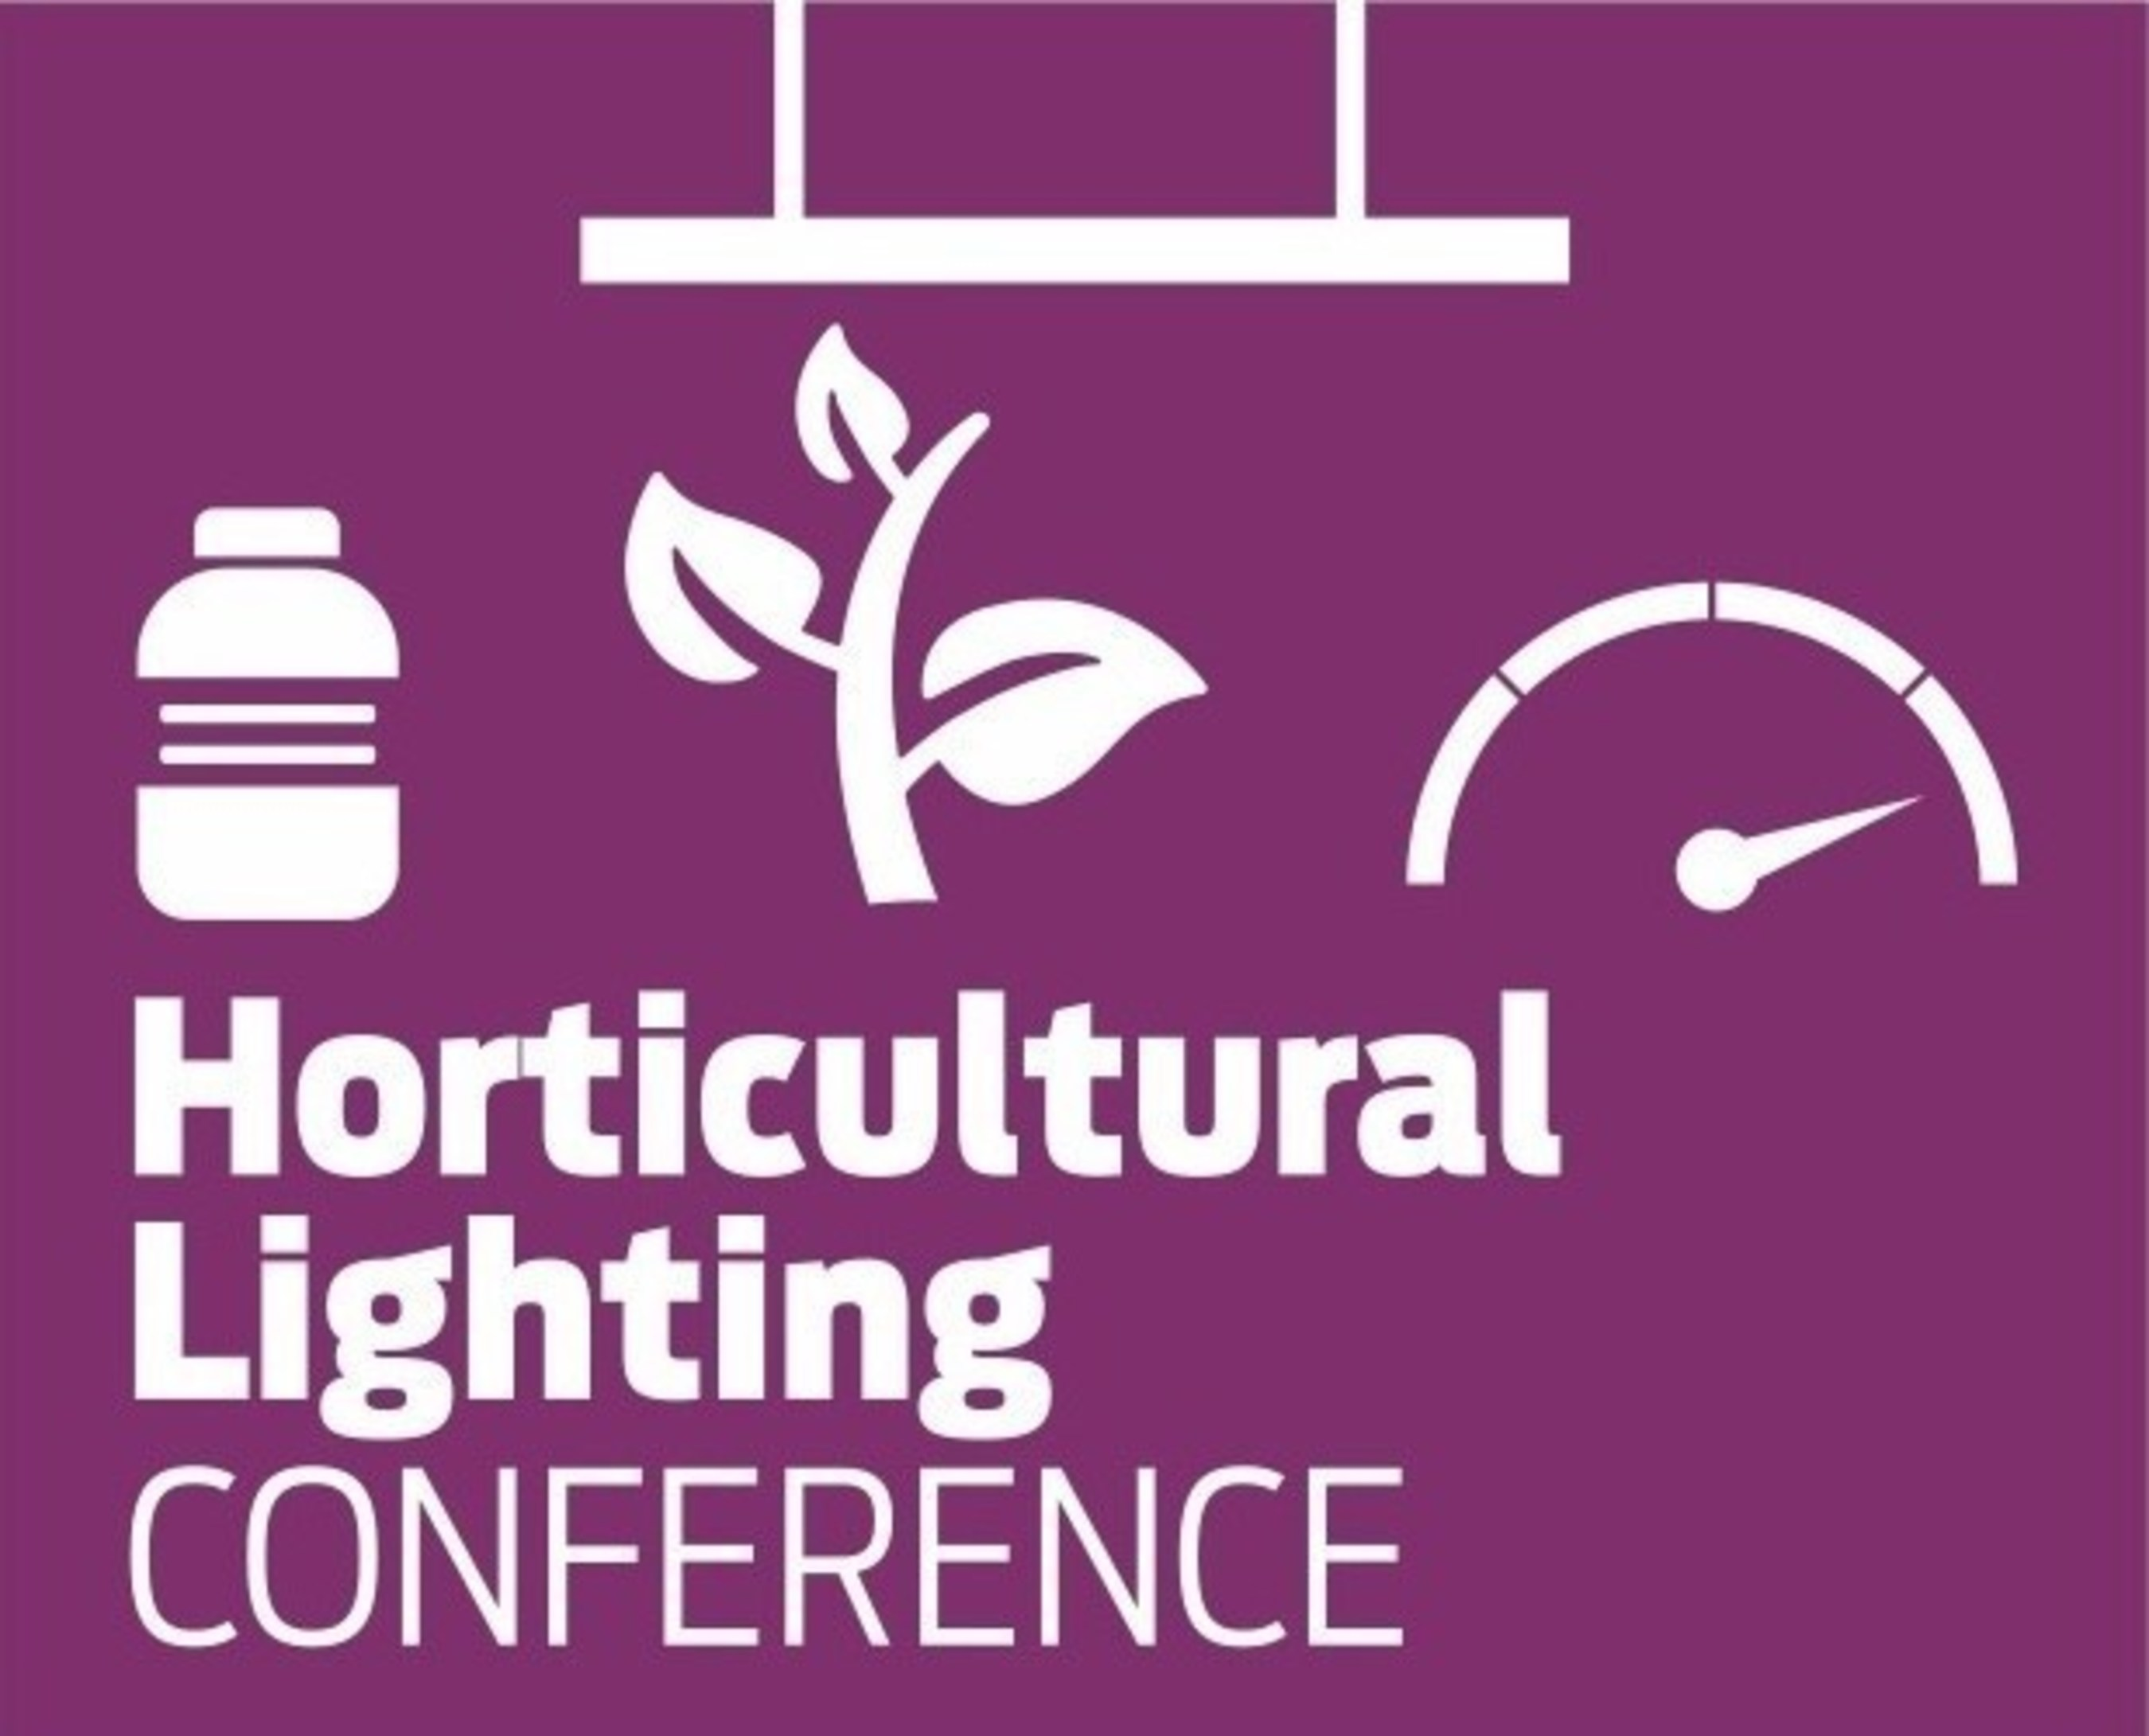 The Horticultural Lighting Conference will be held on October 12, 2016 at the Palmer House Hilton in Chicago, IL. Connecting research and technology to end user applications, this specialized one-day conference will provide cutting-edge information on the latest technologies and techniques impacting the advancement of the horticultural lighting market. For more information, visit http://horticulturelightingconference.com.